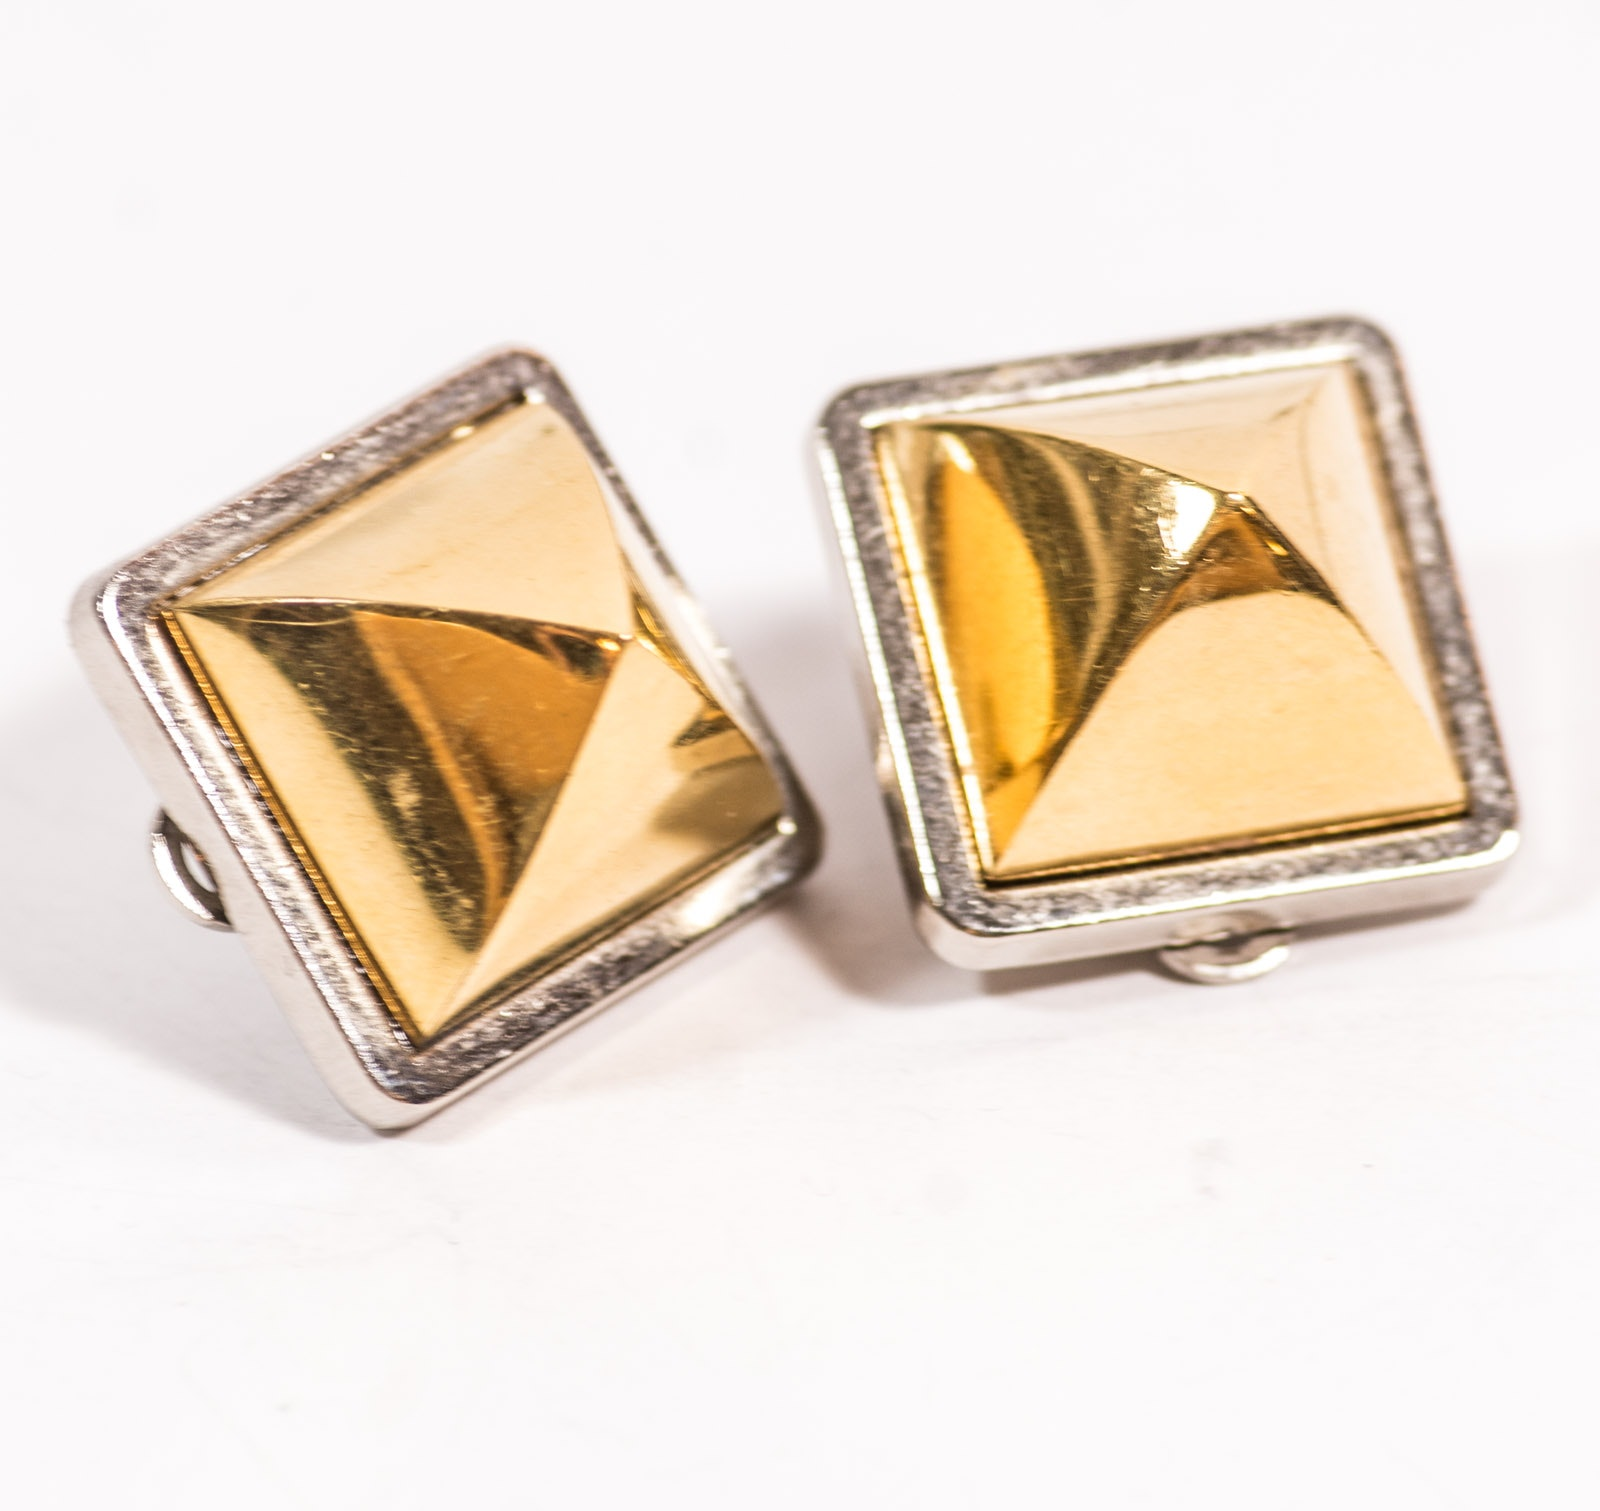 Vintage Hermès Clip-On Earrings